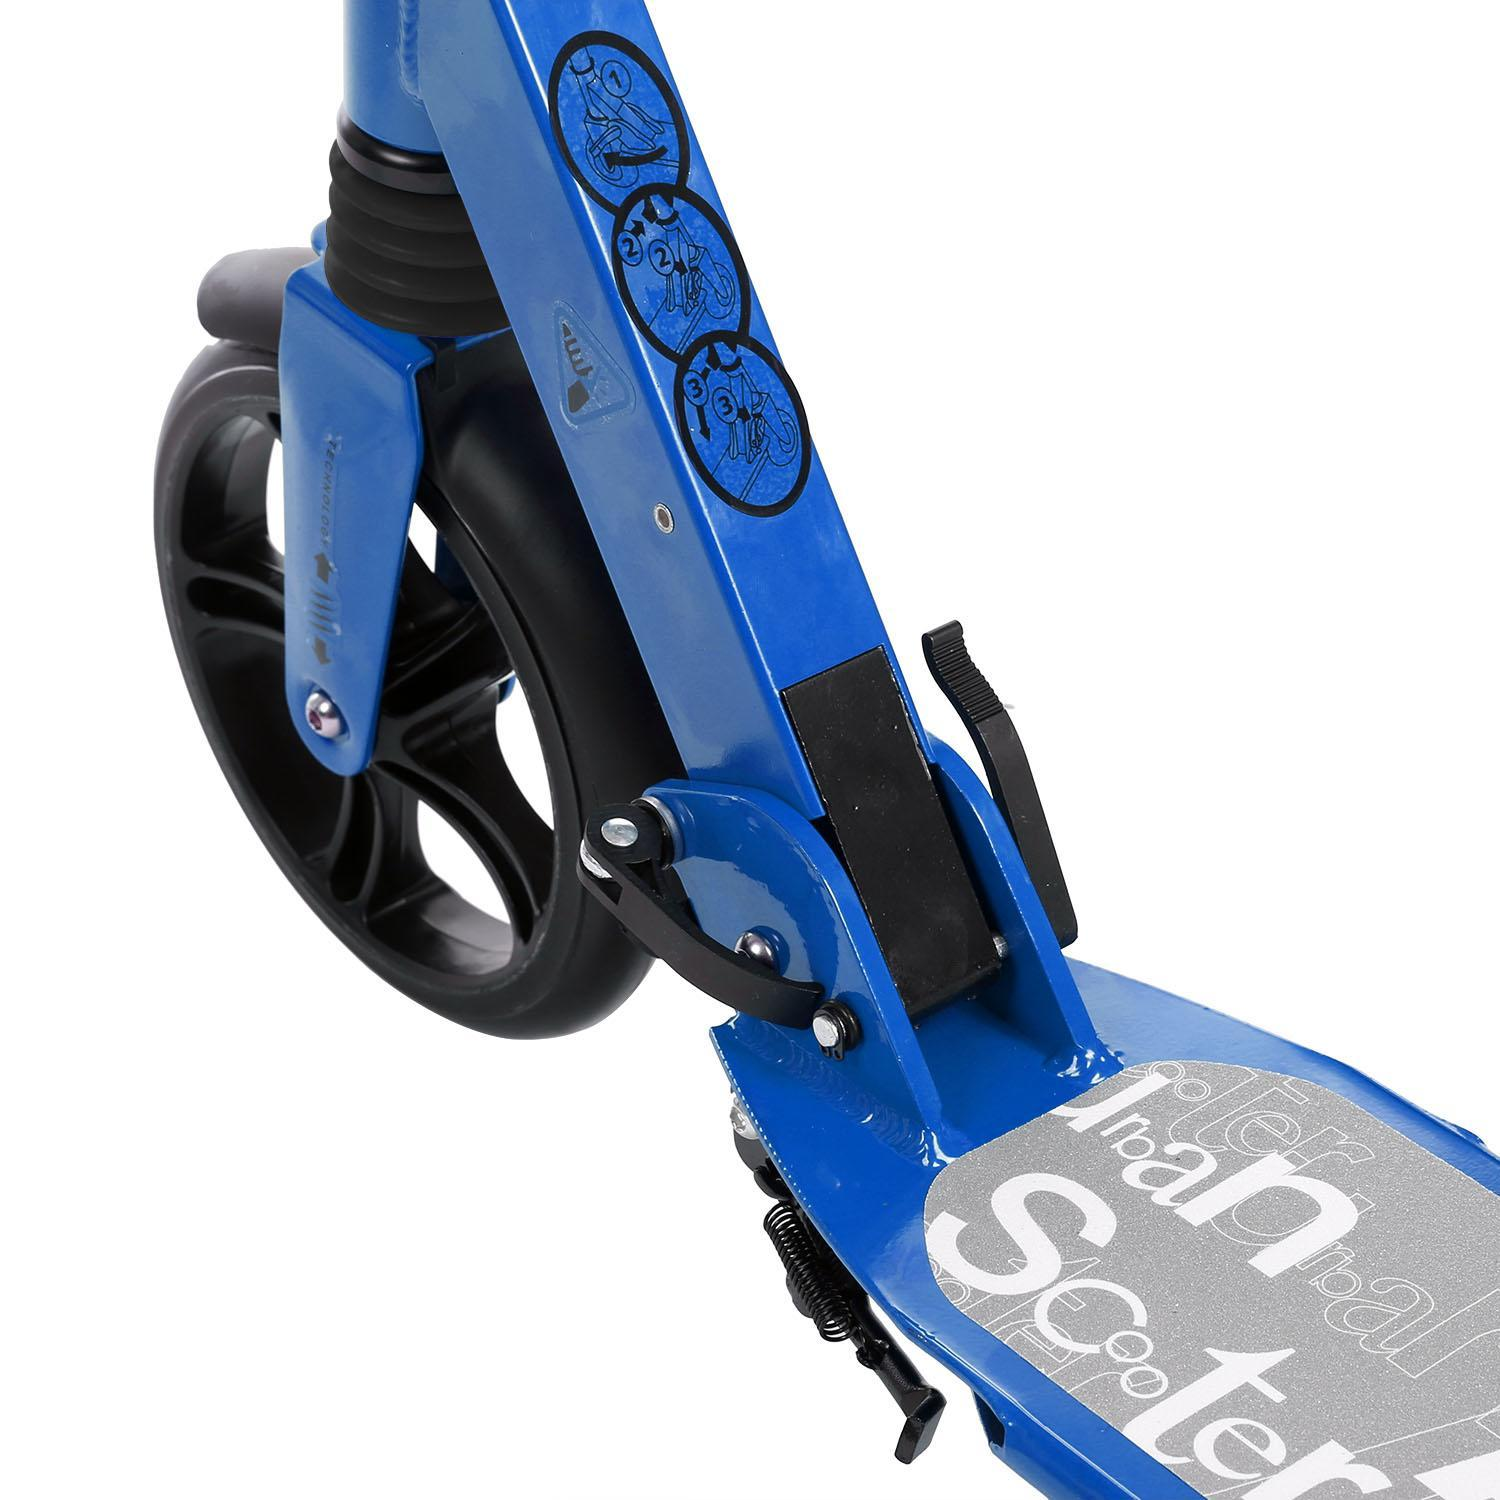 Scooter Sturdy Lightweight Height Adjustable Aluminum Alloy T-Style Foldable Design Adults 3